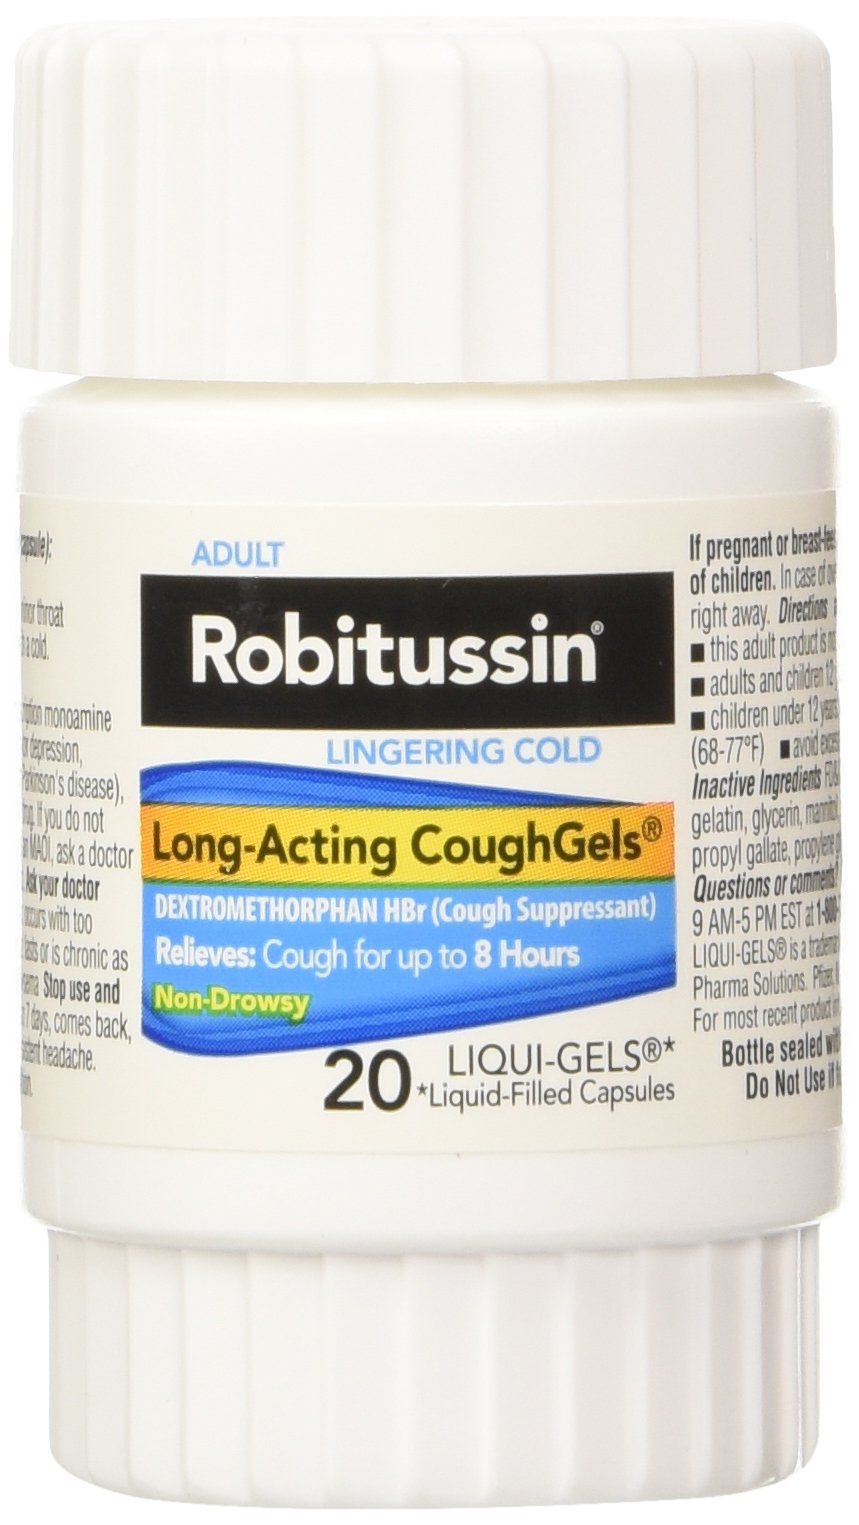 Robitussin Lingering Cold CoughGels Long-Acting 8-Hour Cough Suppressant (20-Count Liqui-Gel Capsules, Pack of 2)